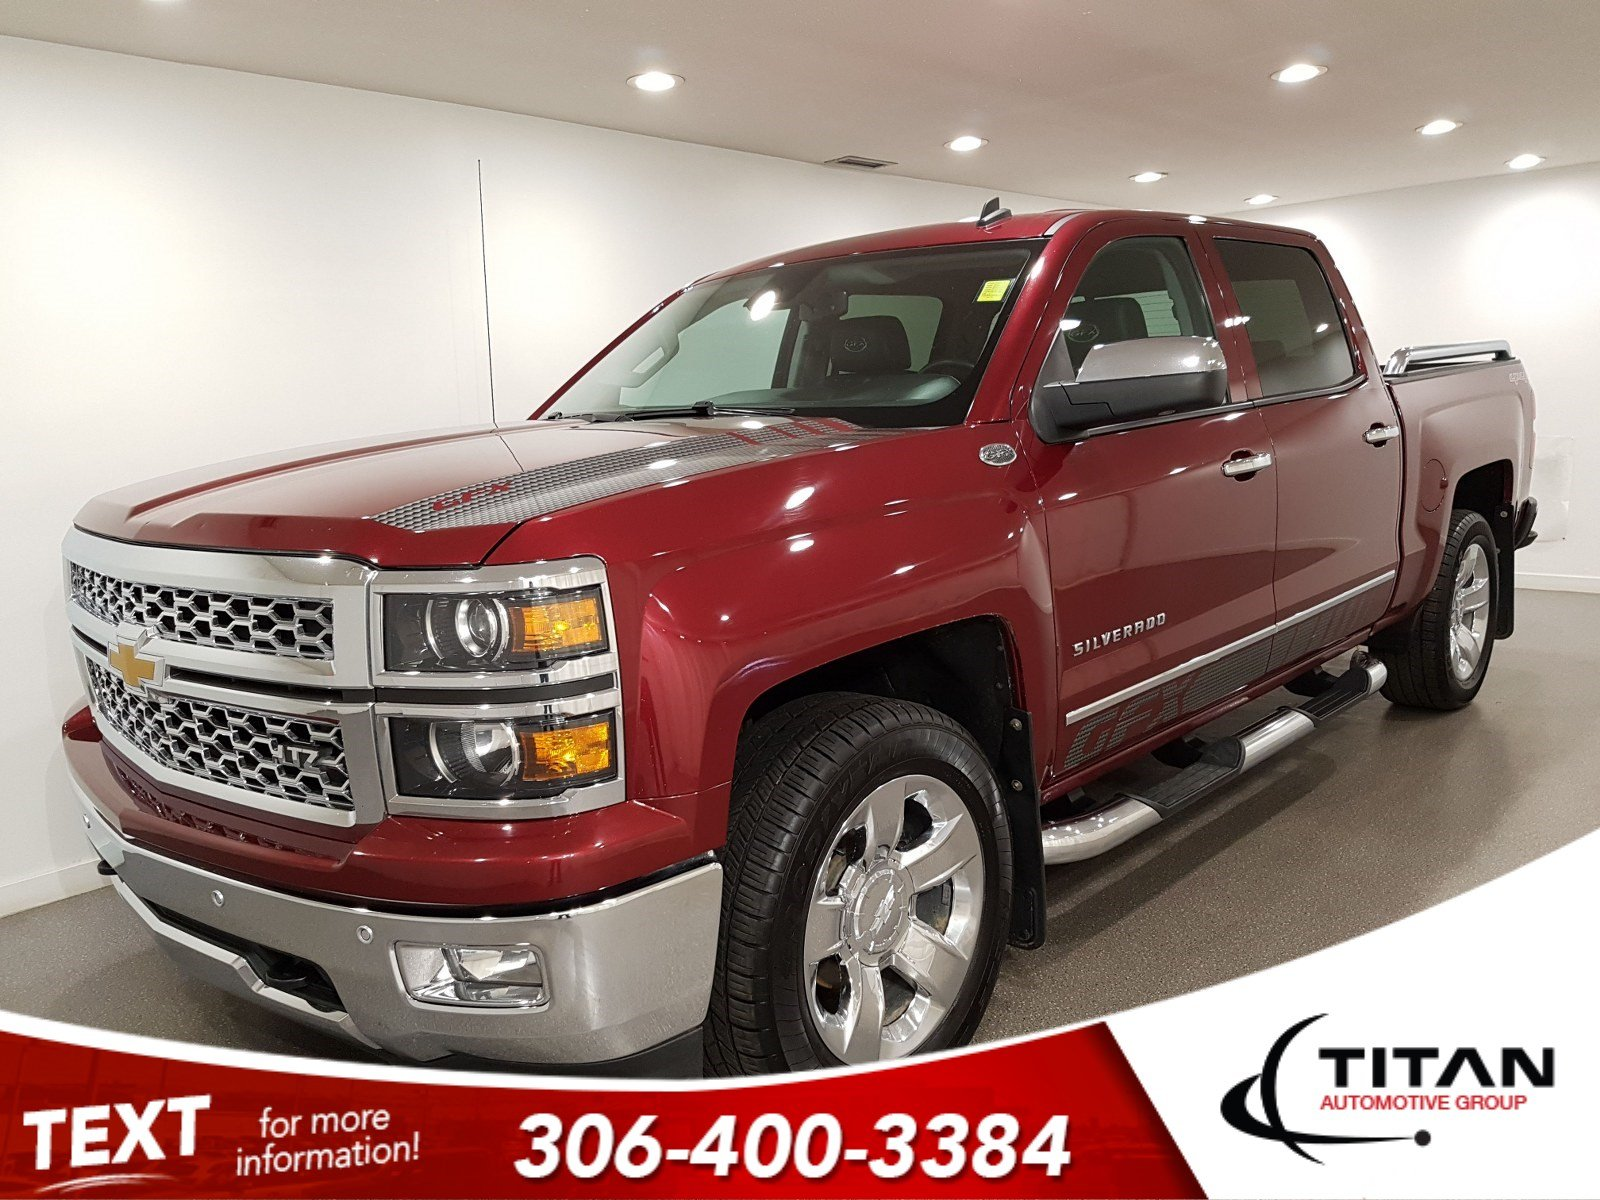 Pre-Owned 2014 Chevrolet Silverado 1500 LTZ GFX V8 4x4 CAM Leather NAV